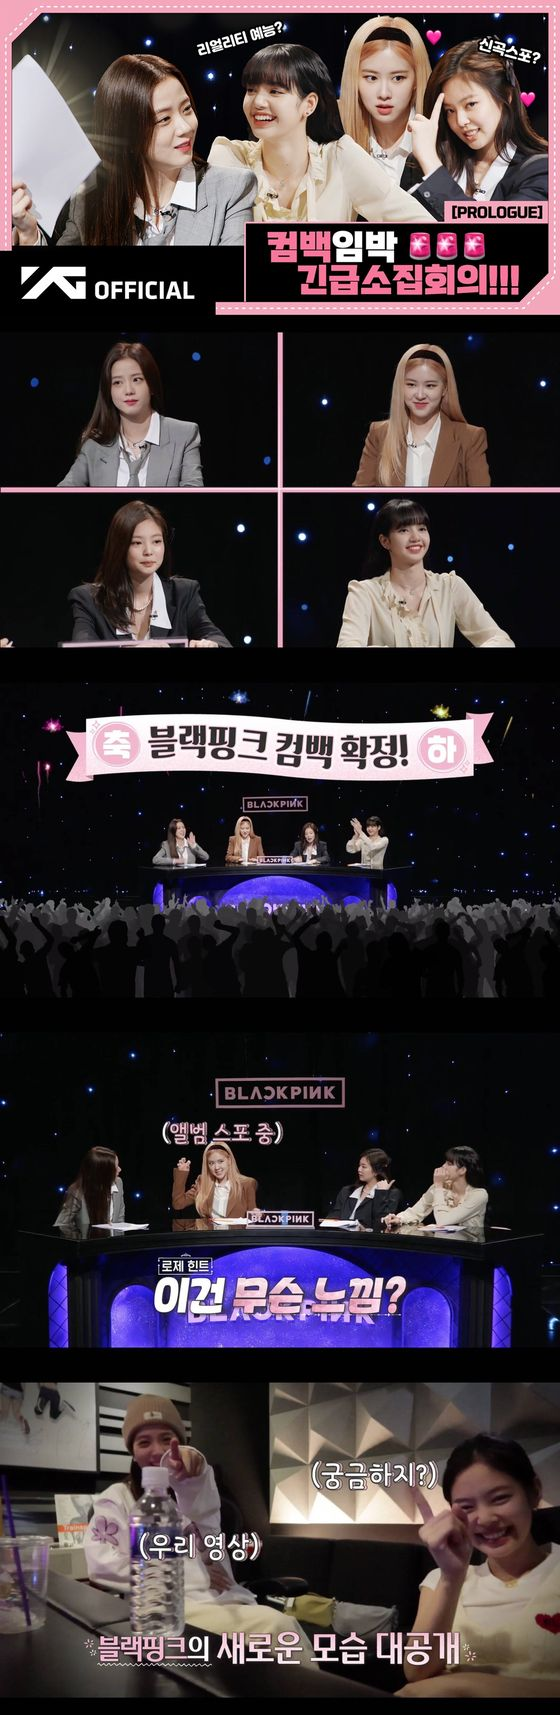 "Blackpink's YouTube show ""24/365 with BLACKPINK"" [YG ENTERTAINMENT]"